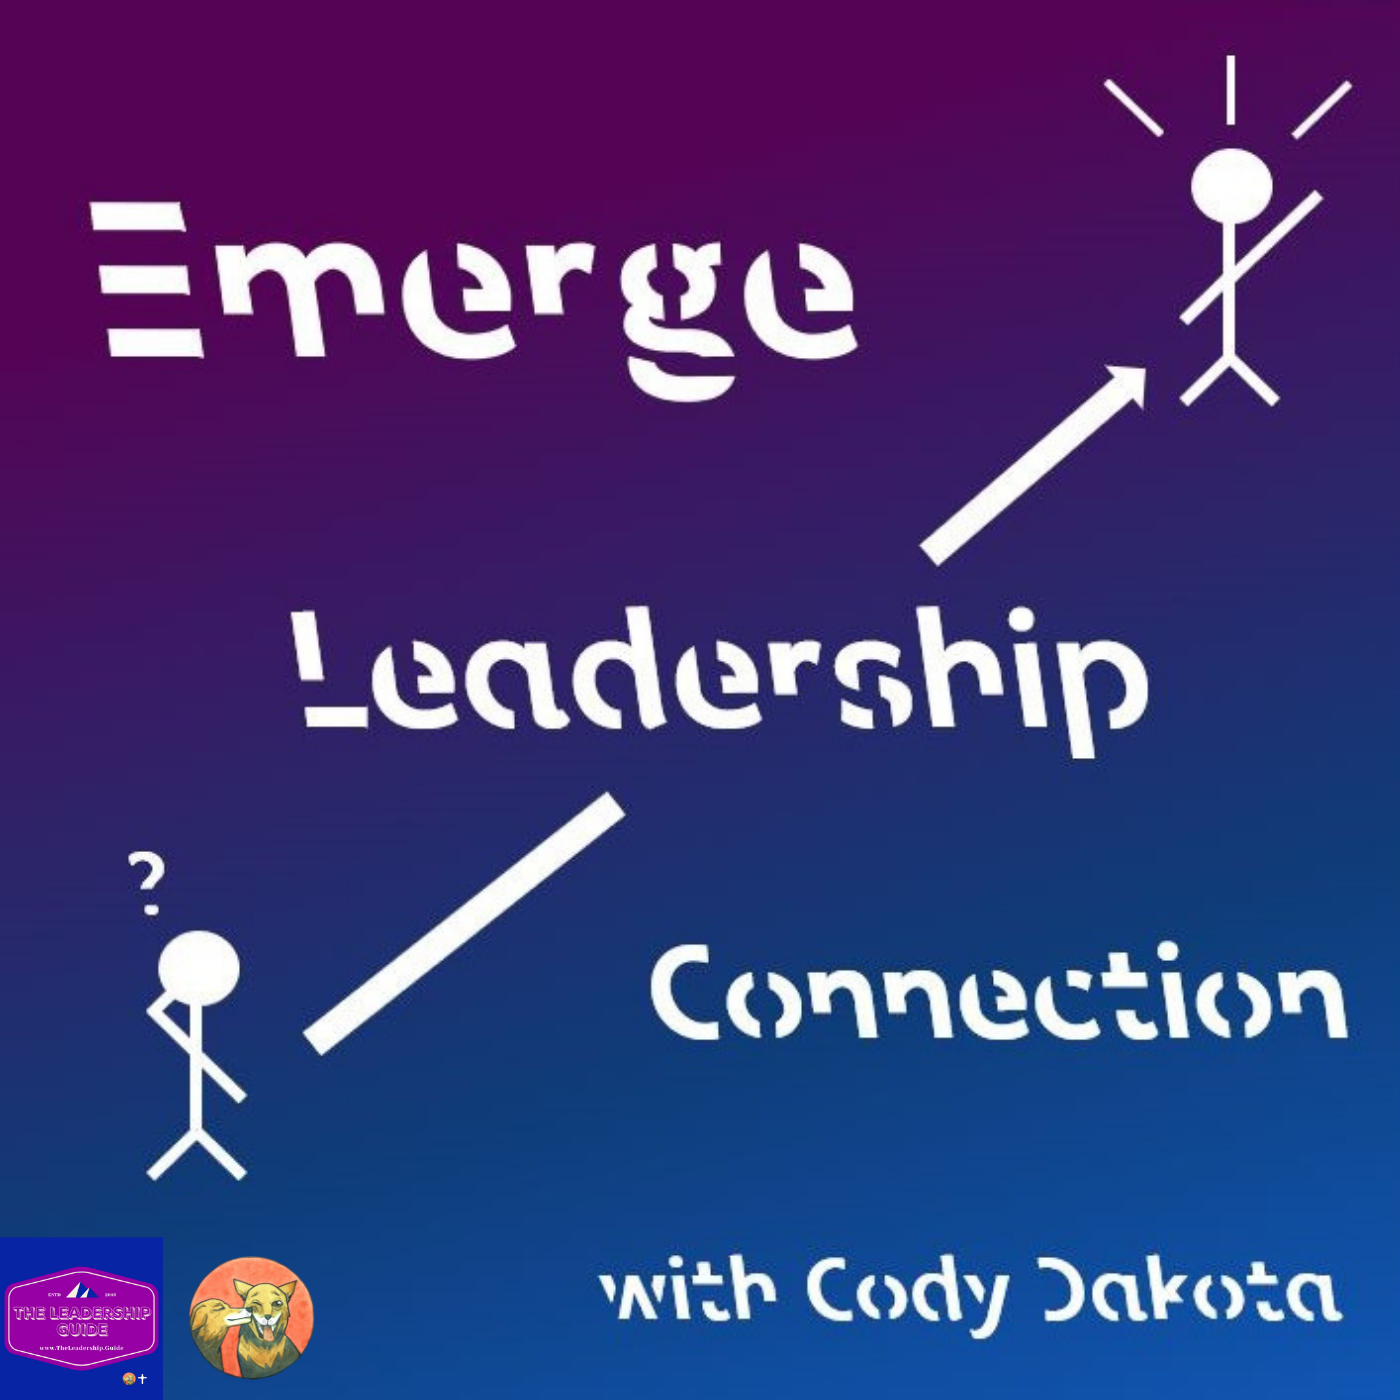 Emerge Leadership Connection with Cody Dakota